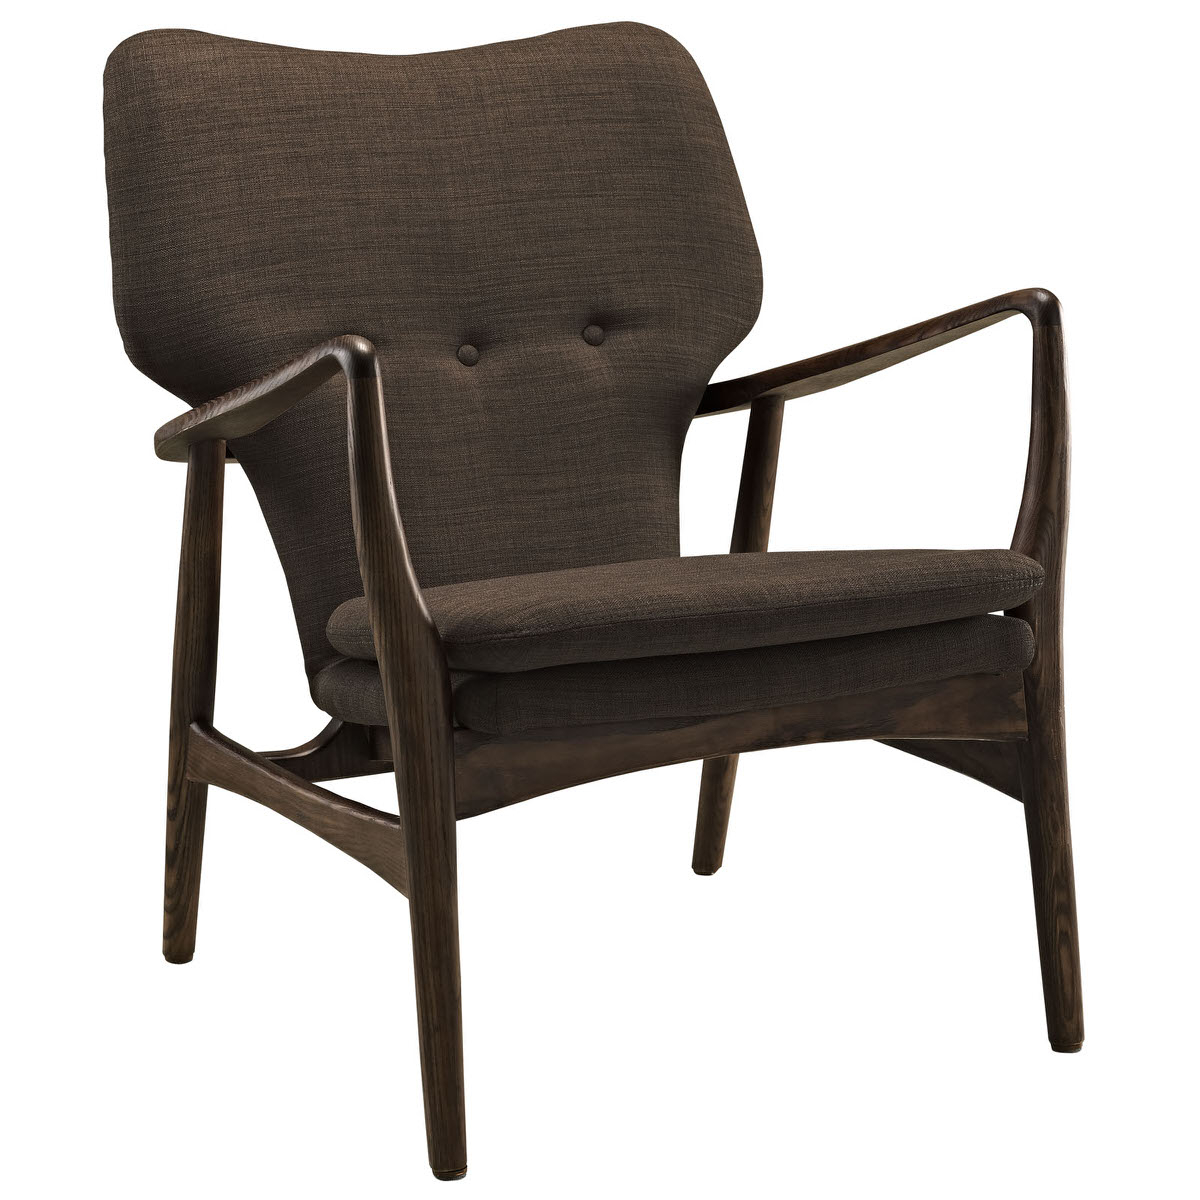 Heed Upholstered Lounge Chair Walnut Brownmodway Throughout Revolve Swivel Accent Chairs (View 7 of 23)